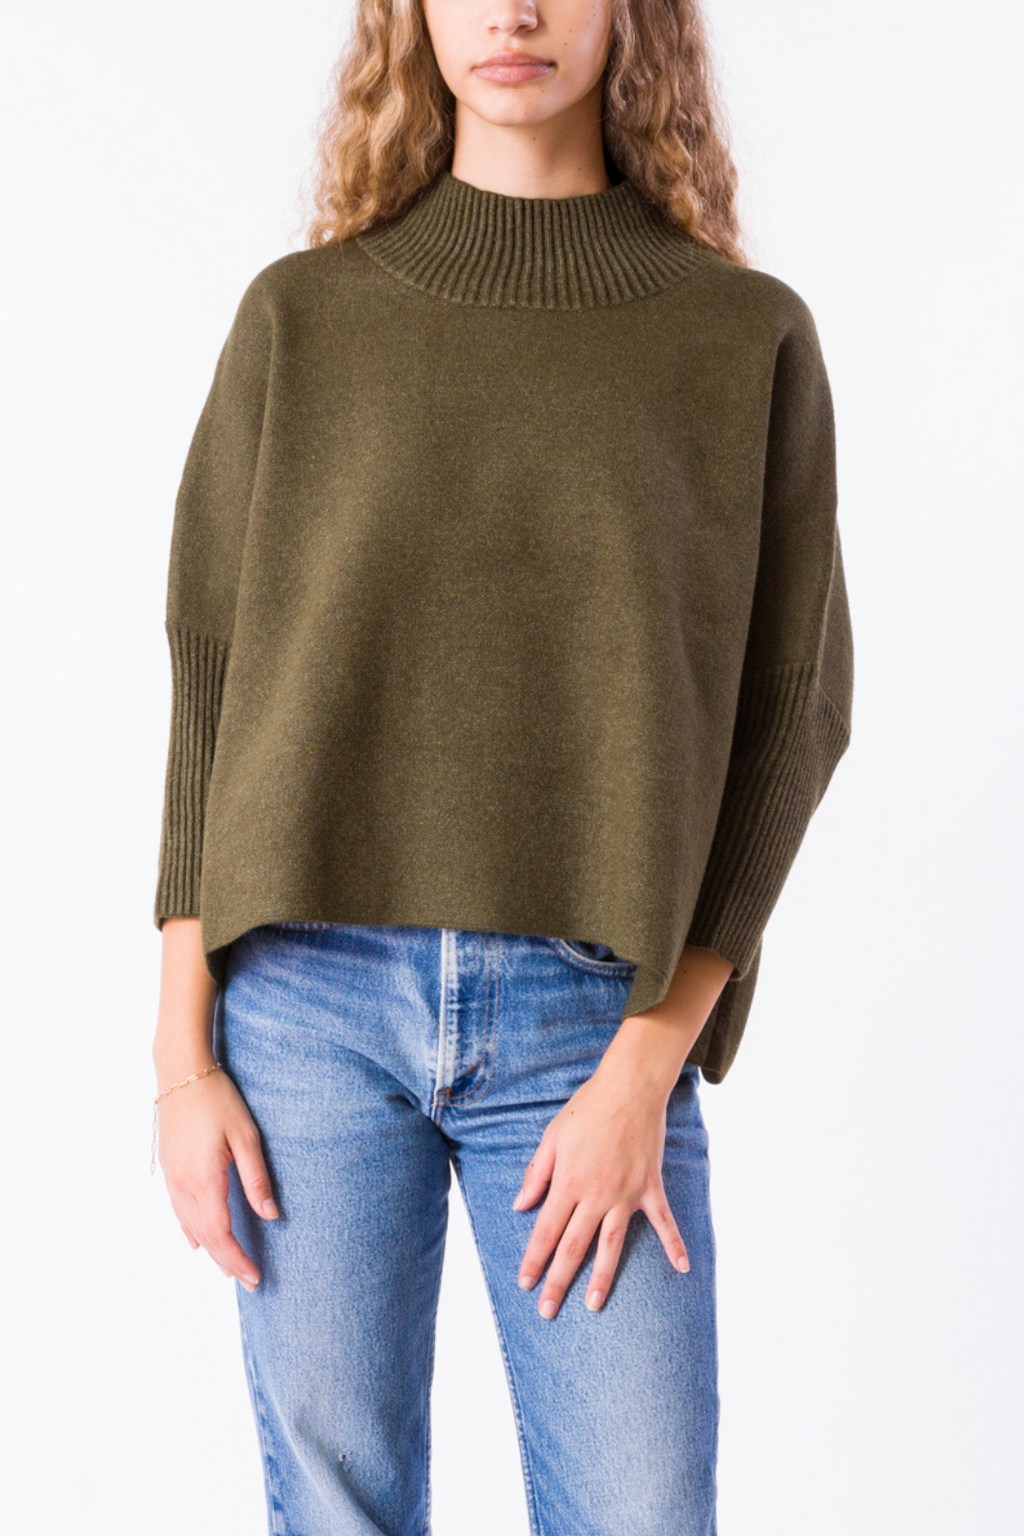 EcoVibe Aja Crop Sweater in Olive